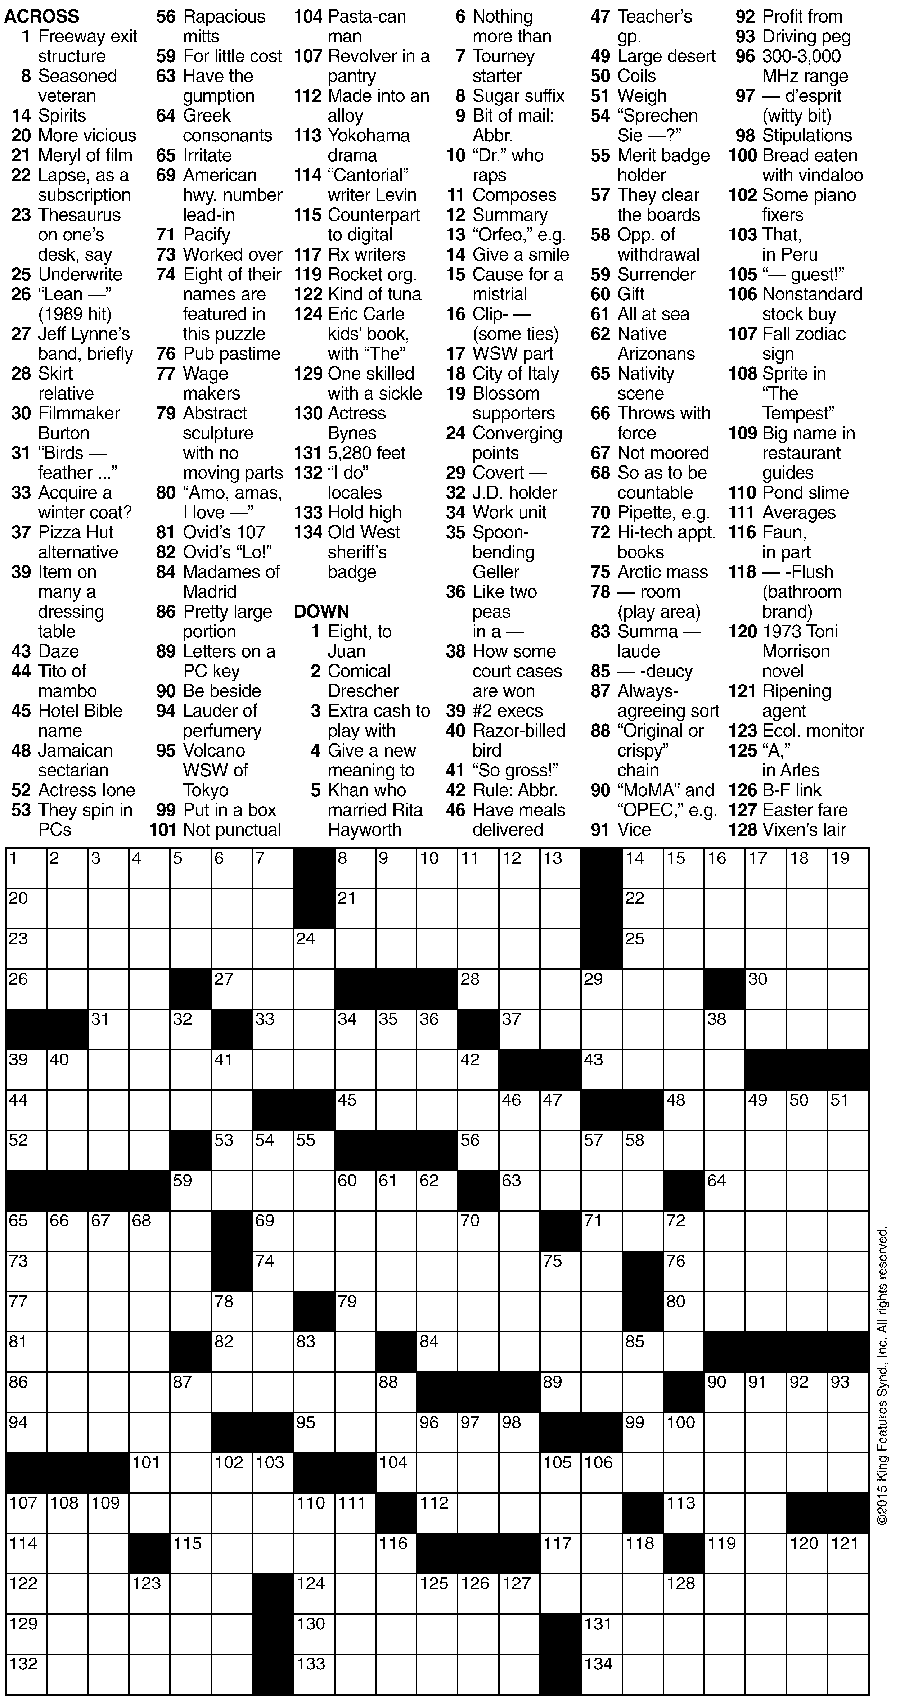 crossword1-2-835ec0fcf8eece23.png